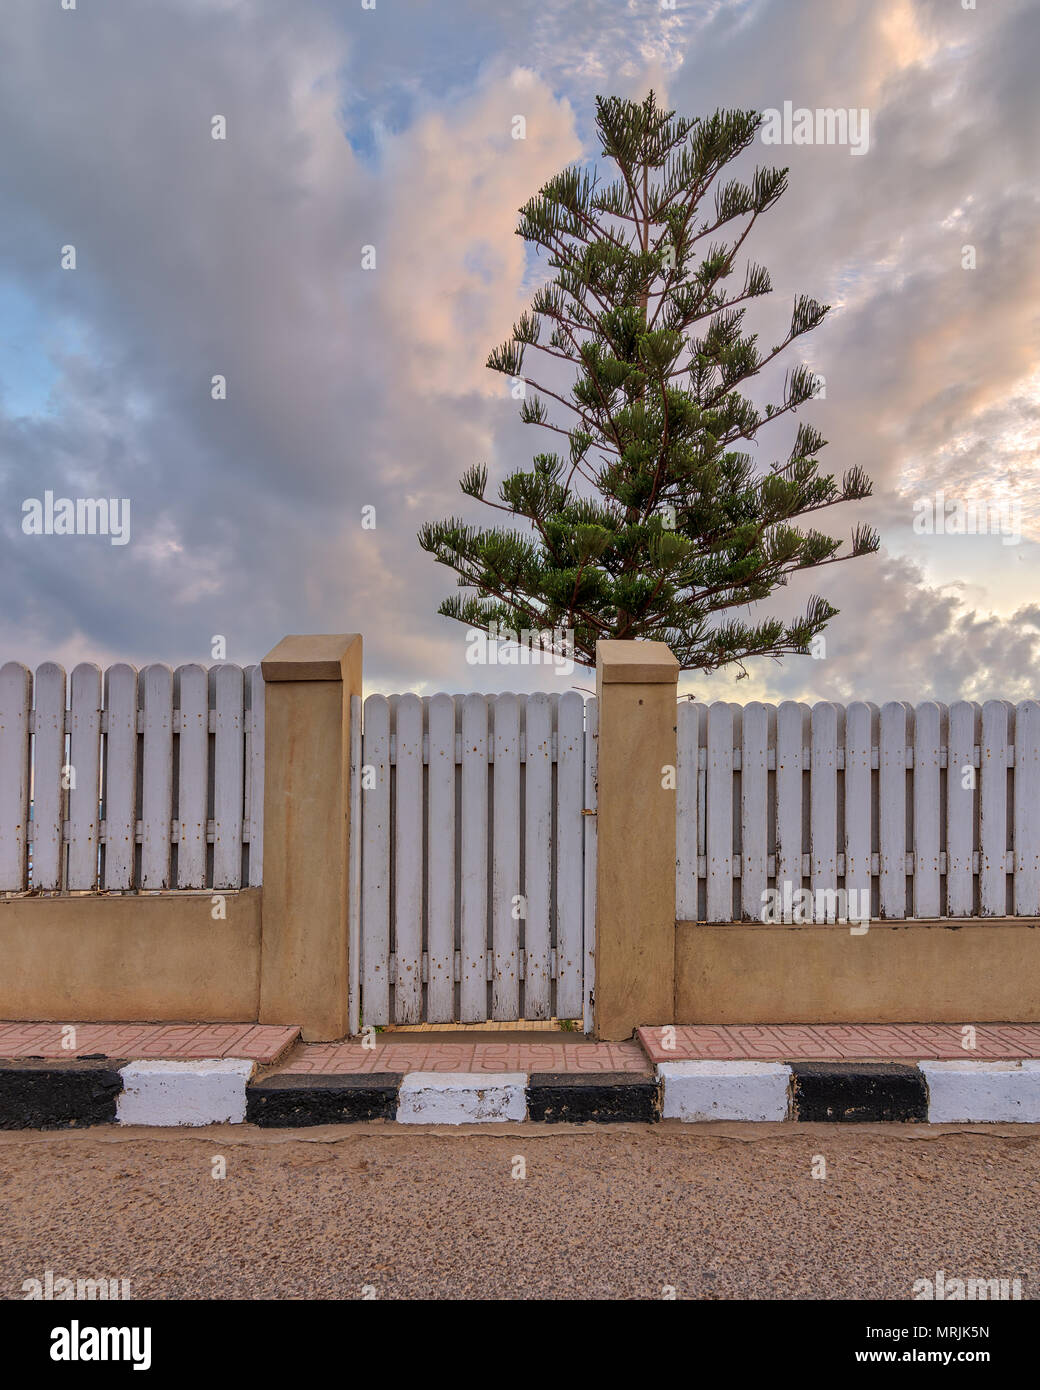 White weathered wooden garden gate and fence with background of single tree and cloudy sky at sunrise time at Montaza public park, Alexandria, Egypt - Stock Image